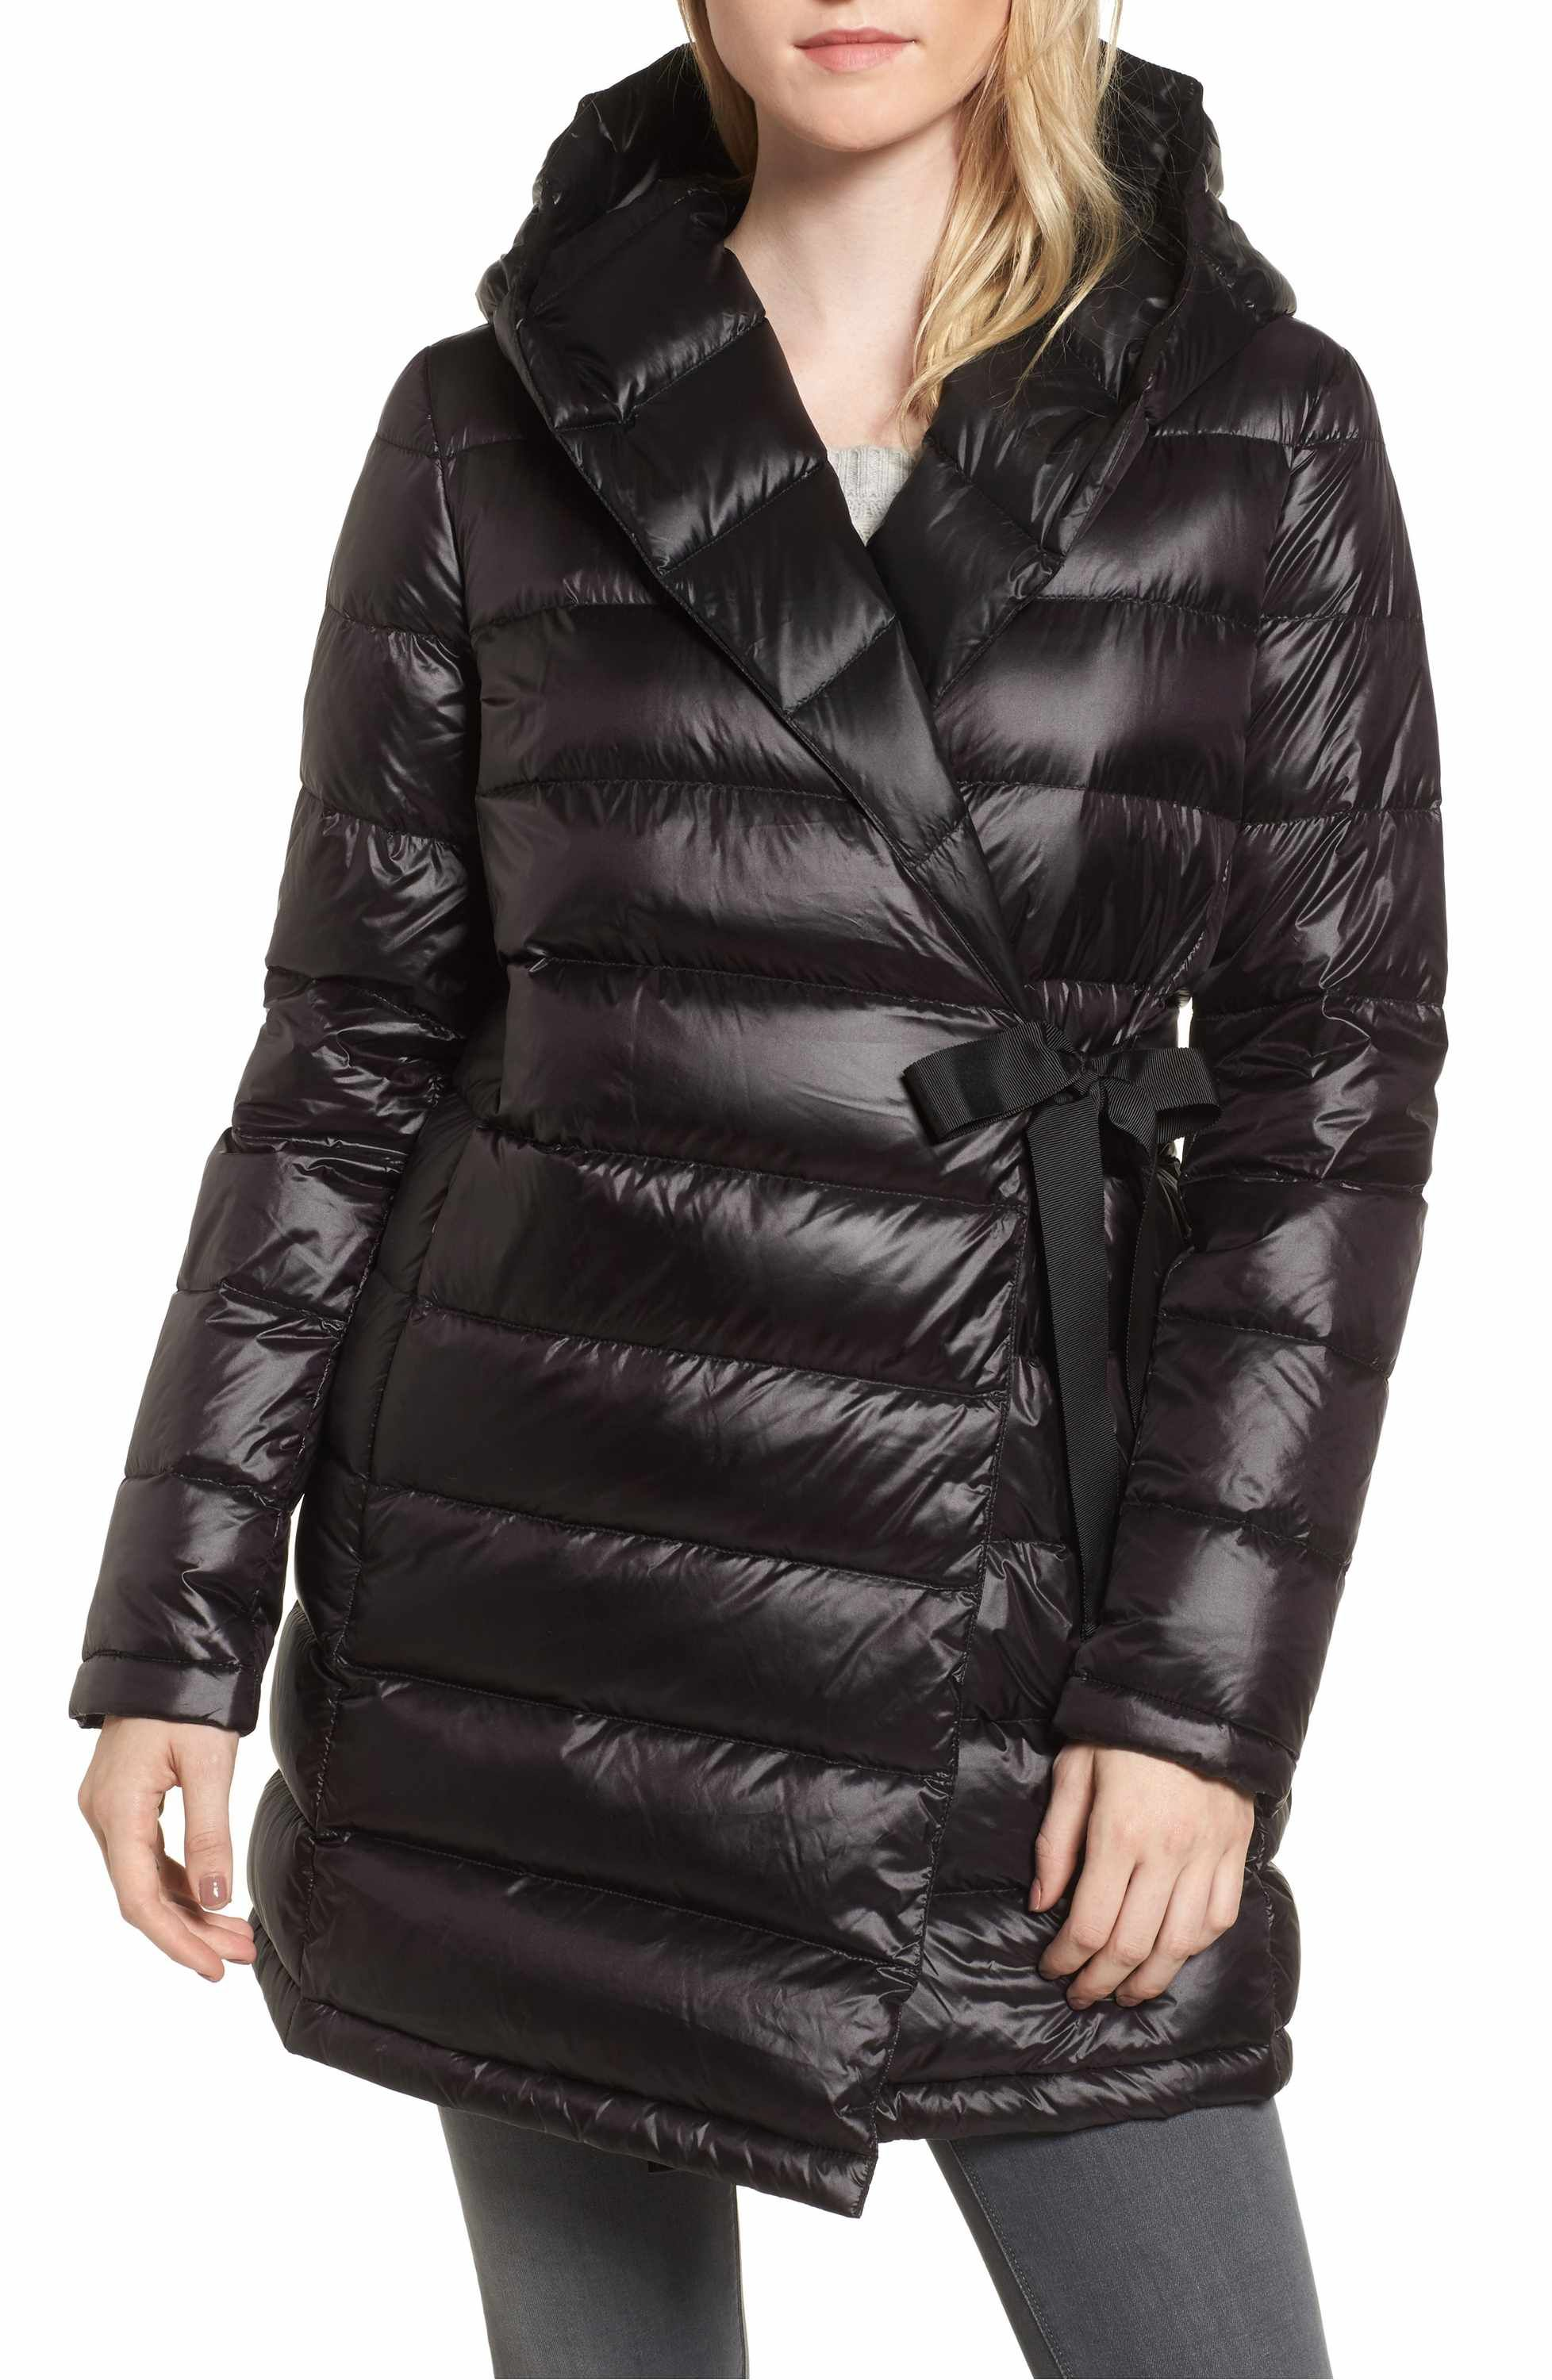 Dkny Water Resistant Packable Down Parka With Tie Closure Nordstrom Puffer Coat Down Puffer Coat Down Parka [ 3000 x 1956 Pixel ]